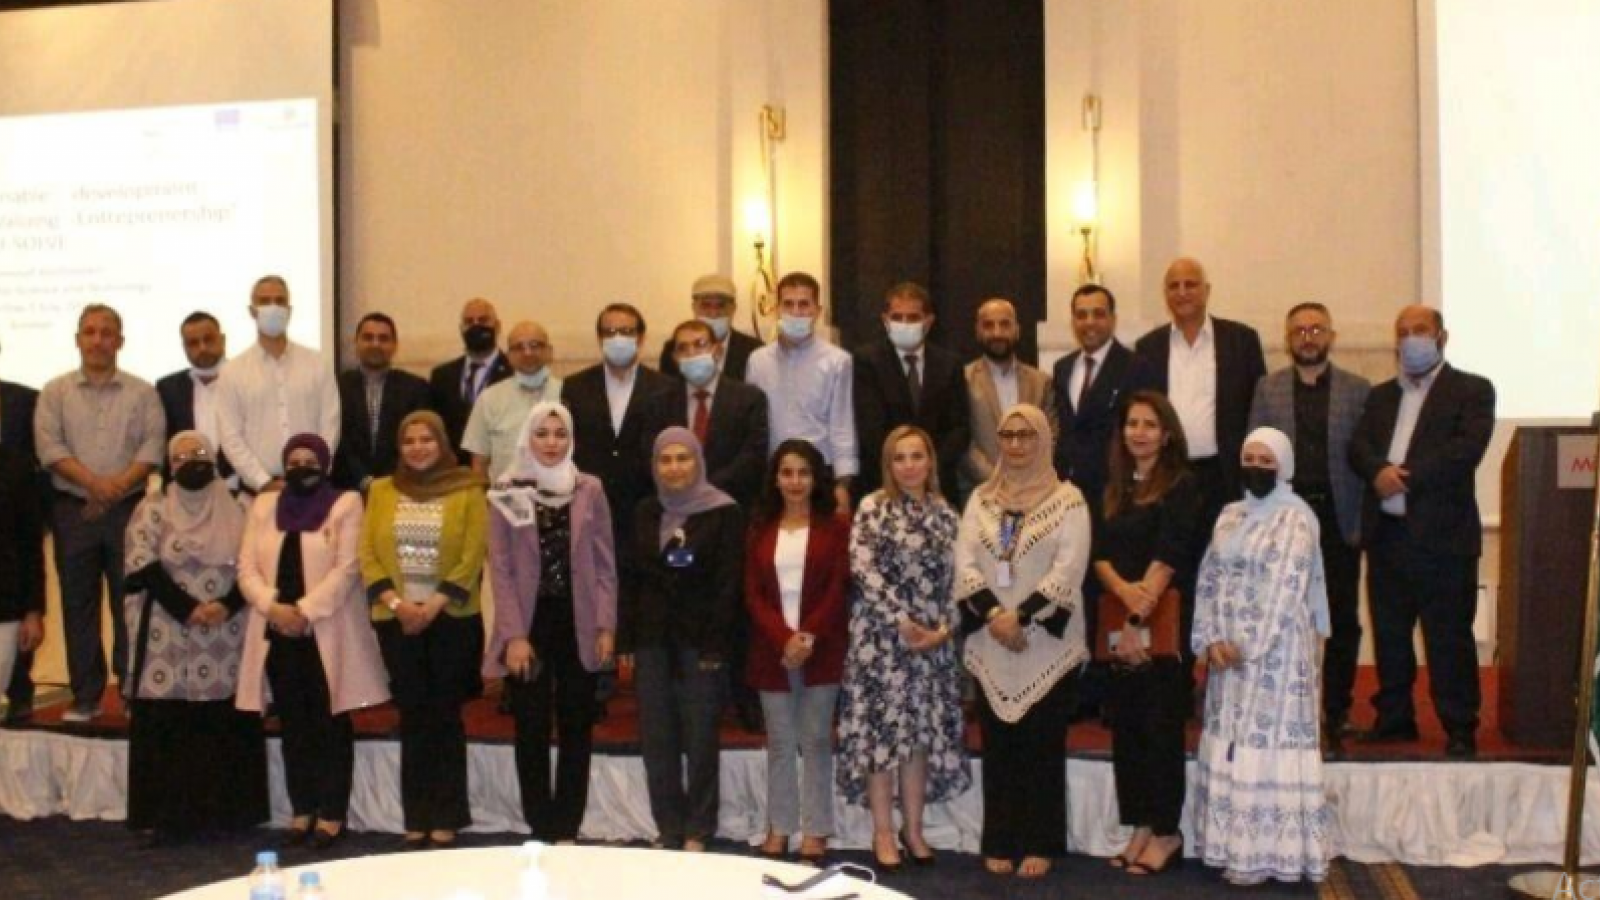 EU-funded IPMED promotes Intellectual Property rights to entrepreneurs in Jordan